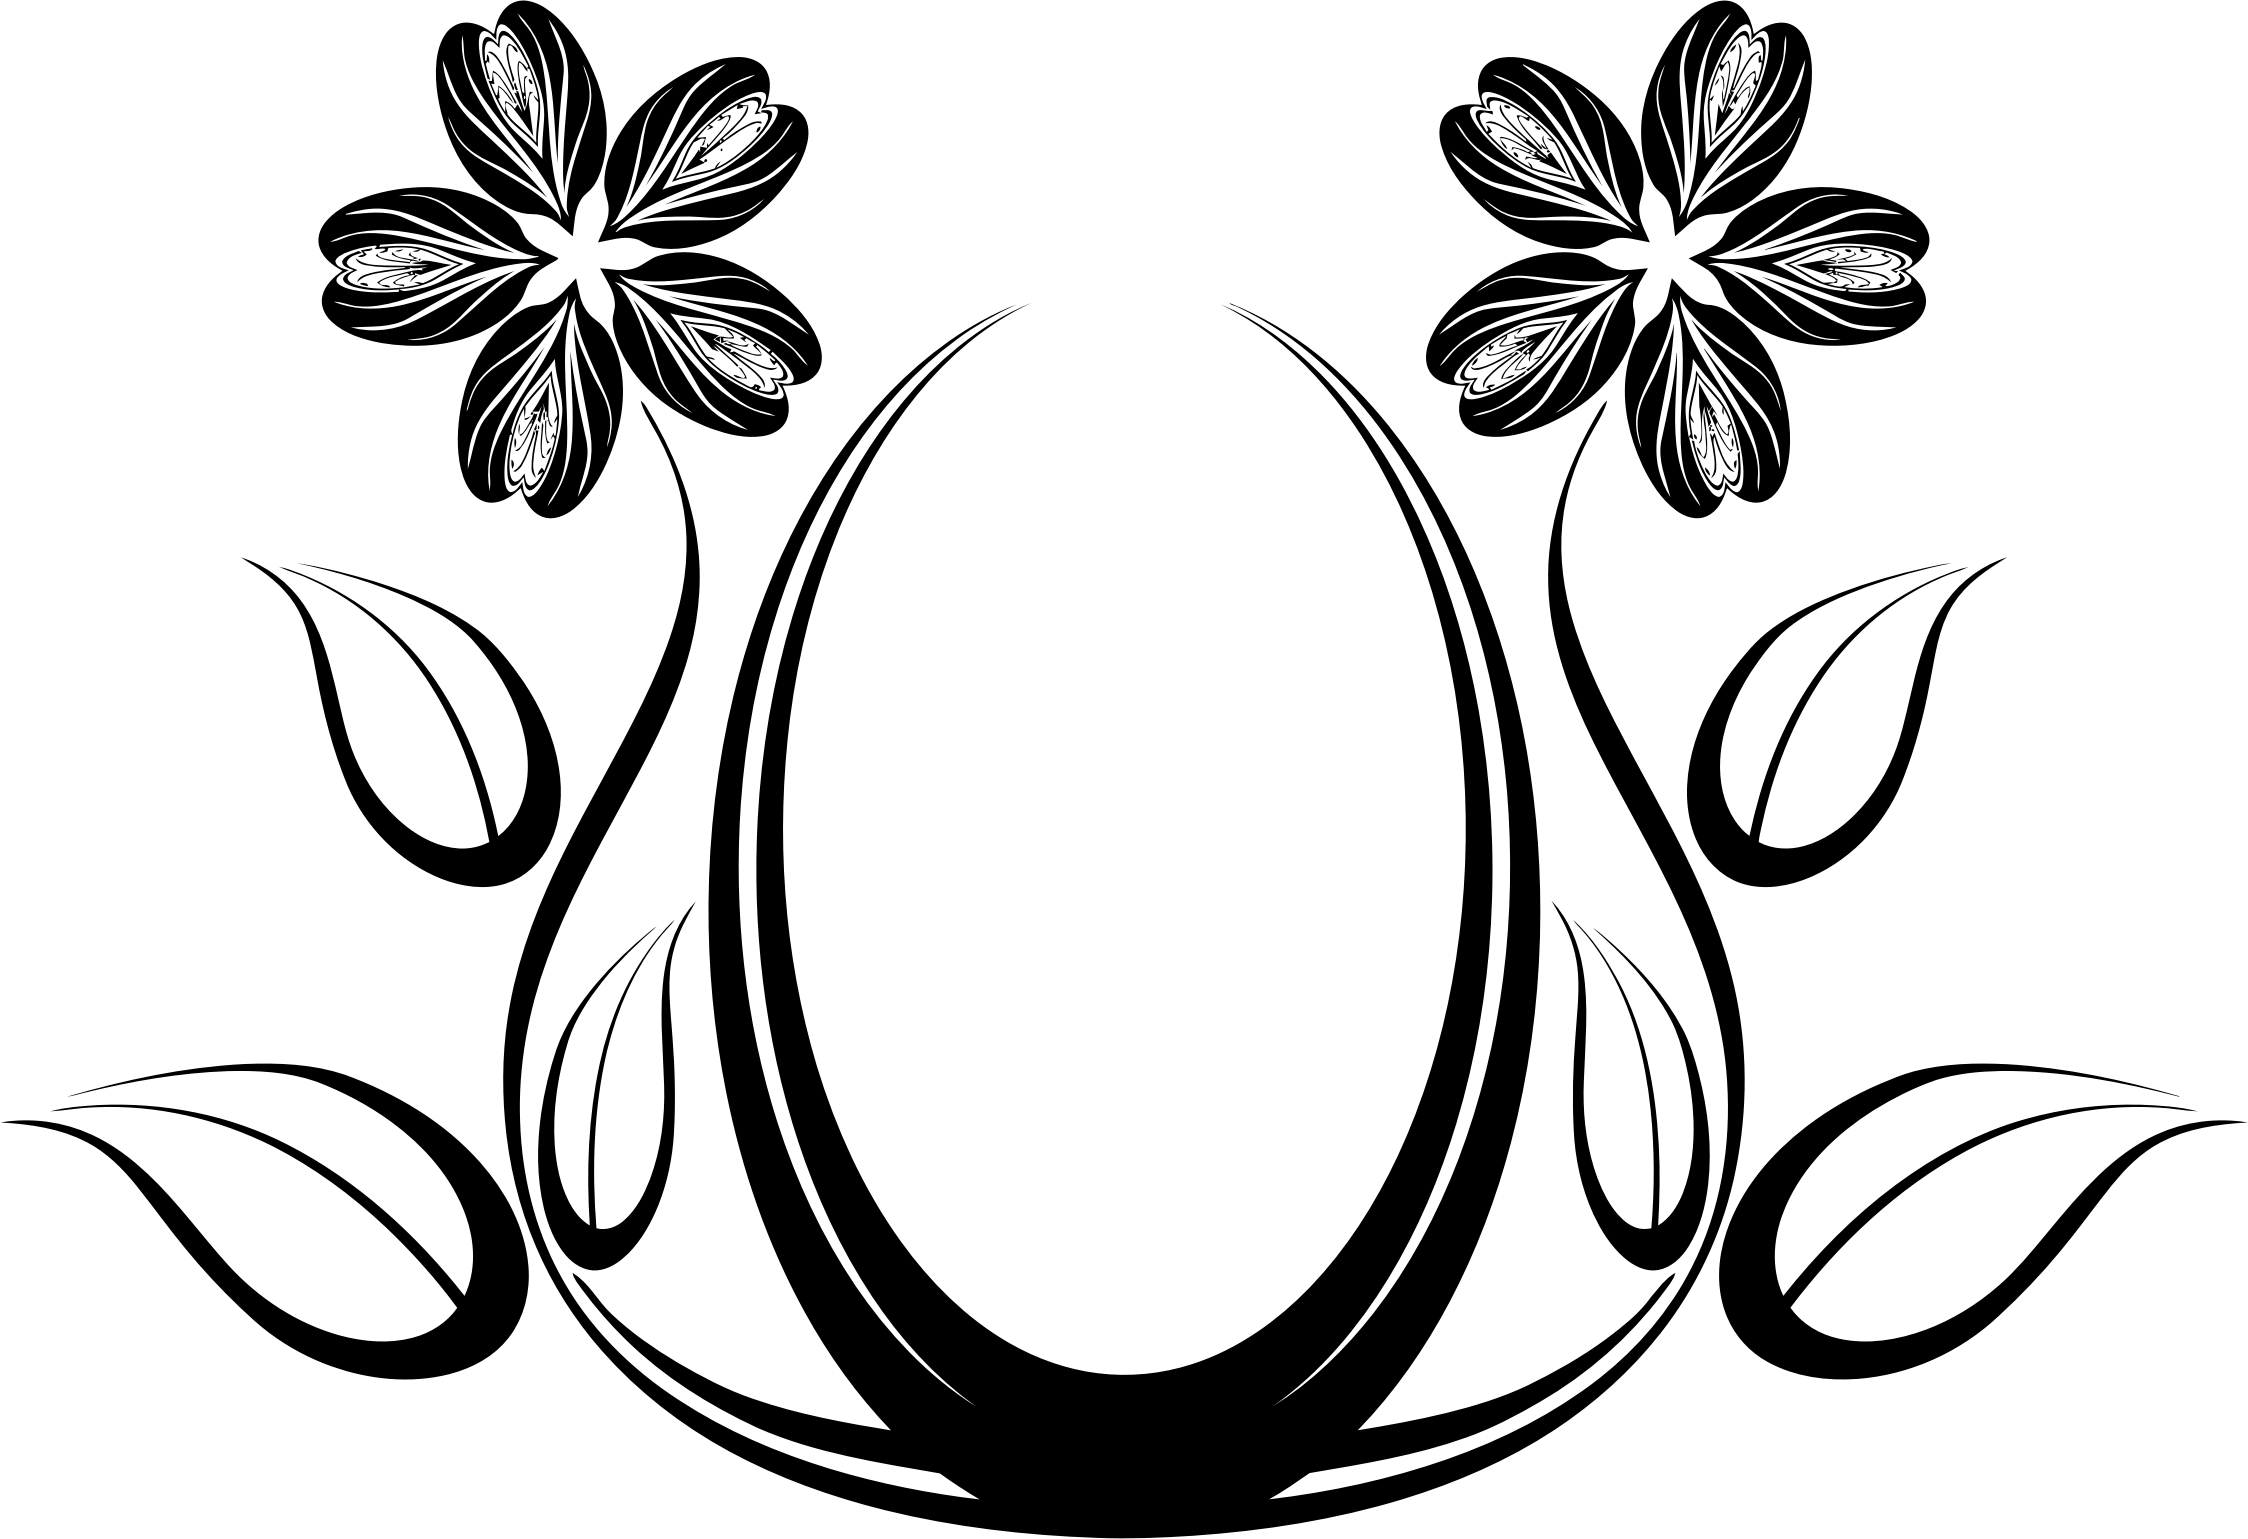 silhouette flower designs at getdrawings com free for personal use rh getdrawings com  floral scroll designs clip art